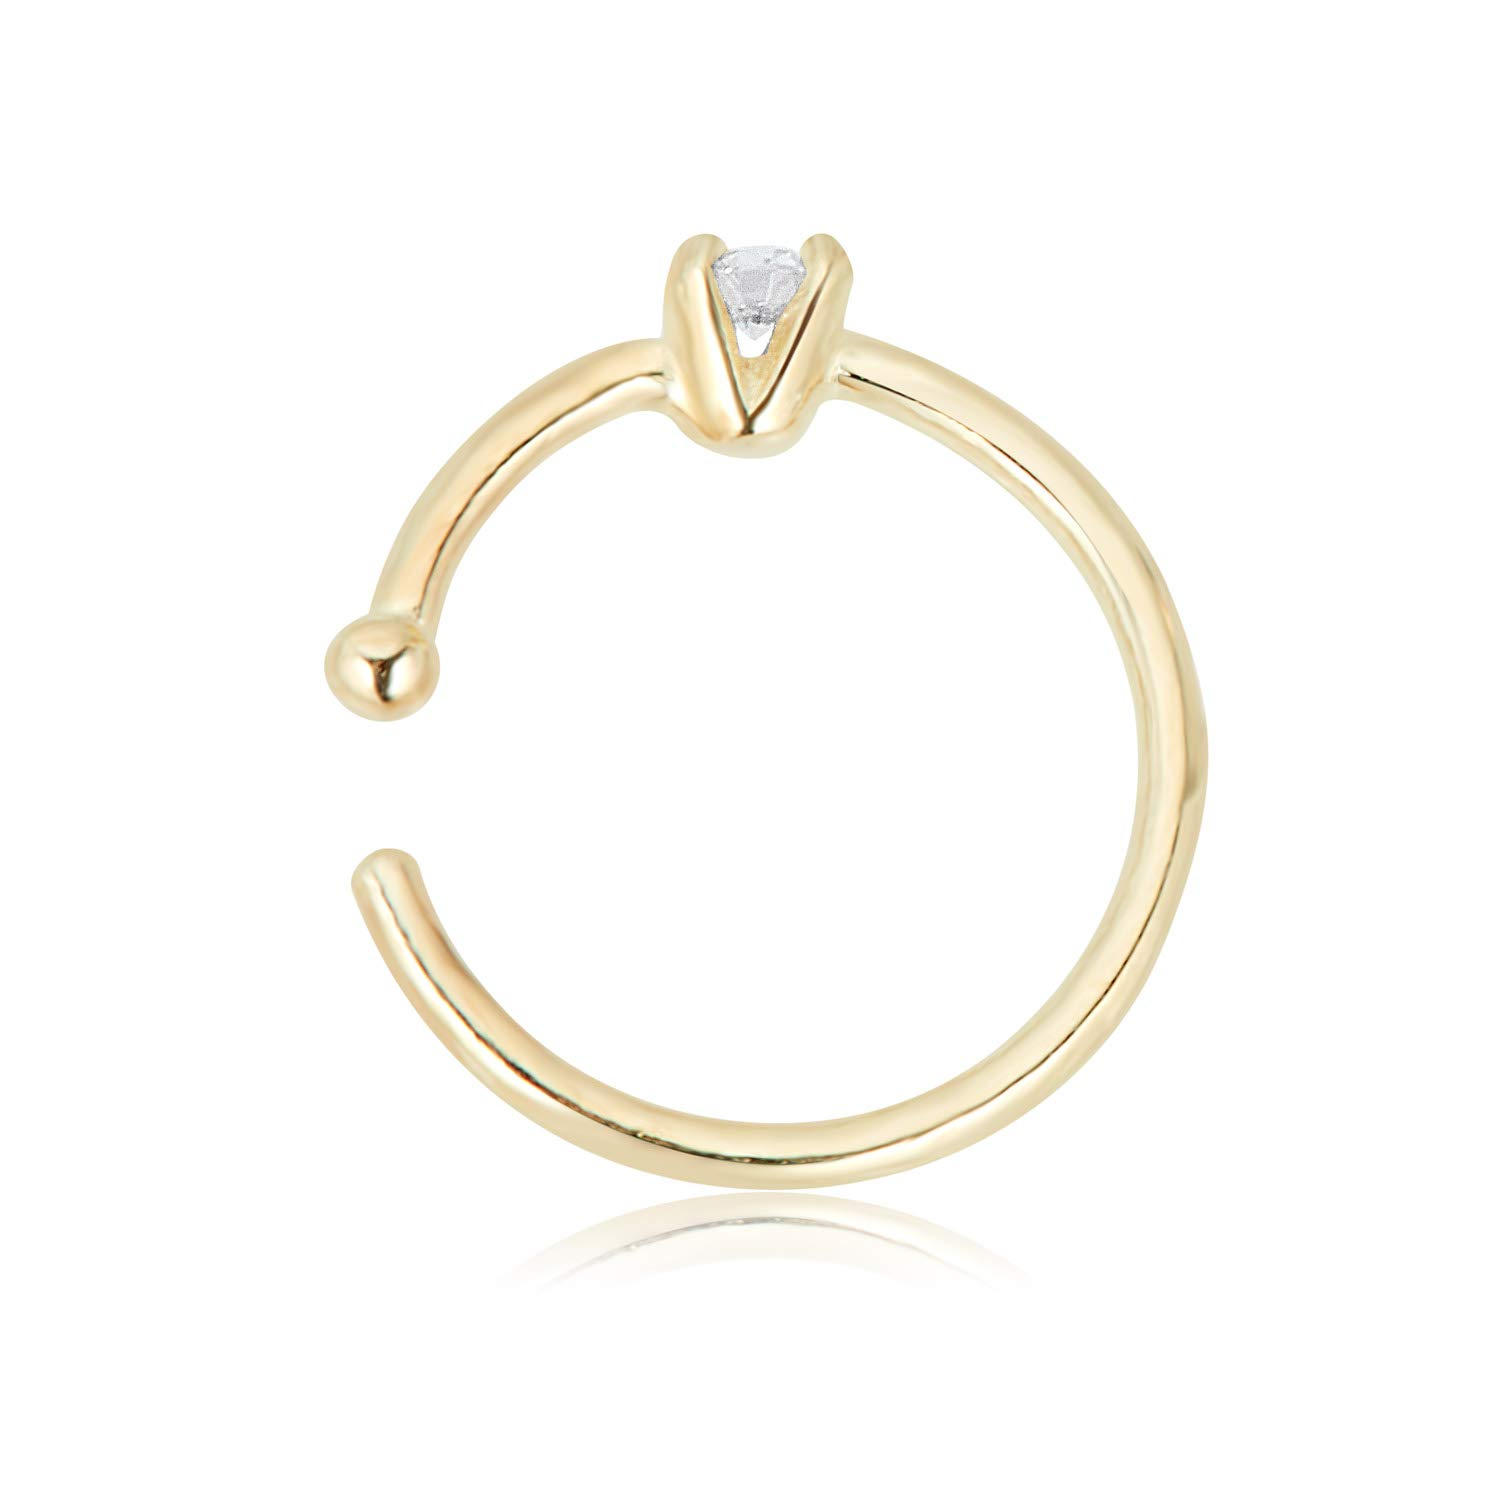 AVORA 14K Yellow Gold 2mm Simulated Diamond CZ Nose Hoop Ring - 20 Gauge by AVORA (Image #2)